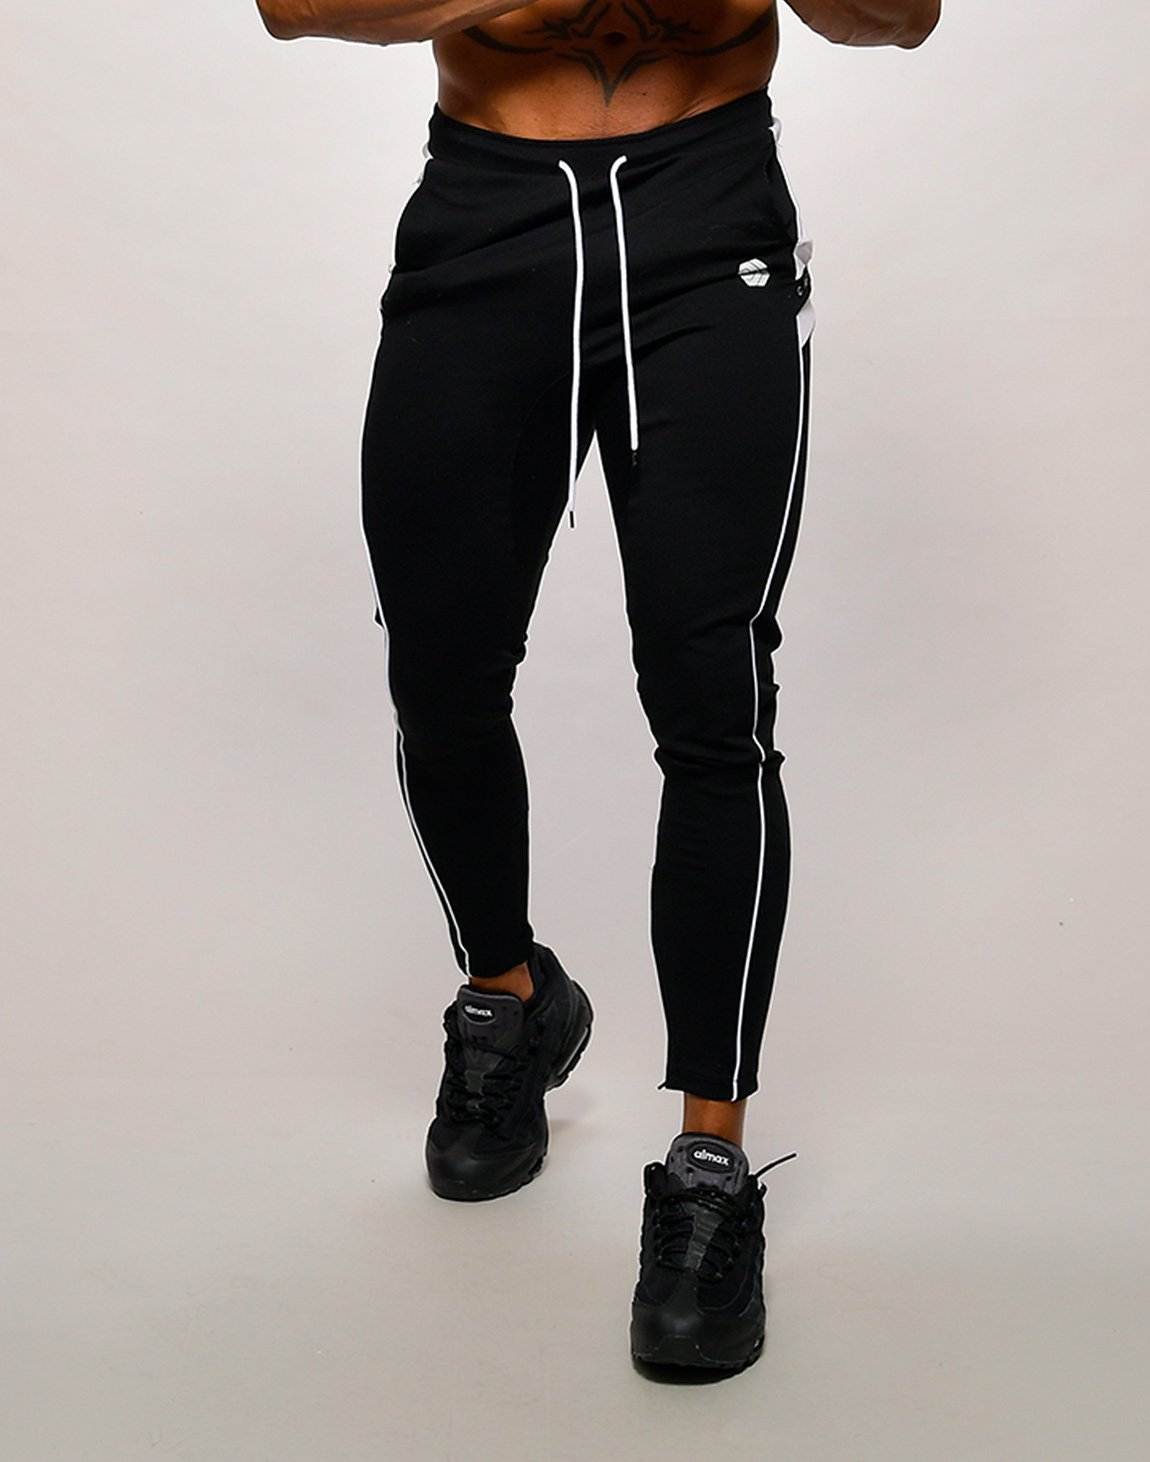 <img class='new_mark_img1' src='https://img.shop-pro.jp/img/new/icons1.gif' style='border:none;display:inline;margin:0px;padding:0px;width:auto;' />CRONOS NARROW SWEAT PANTS【BLACK】